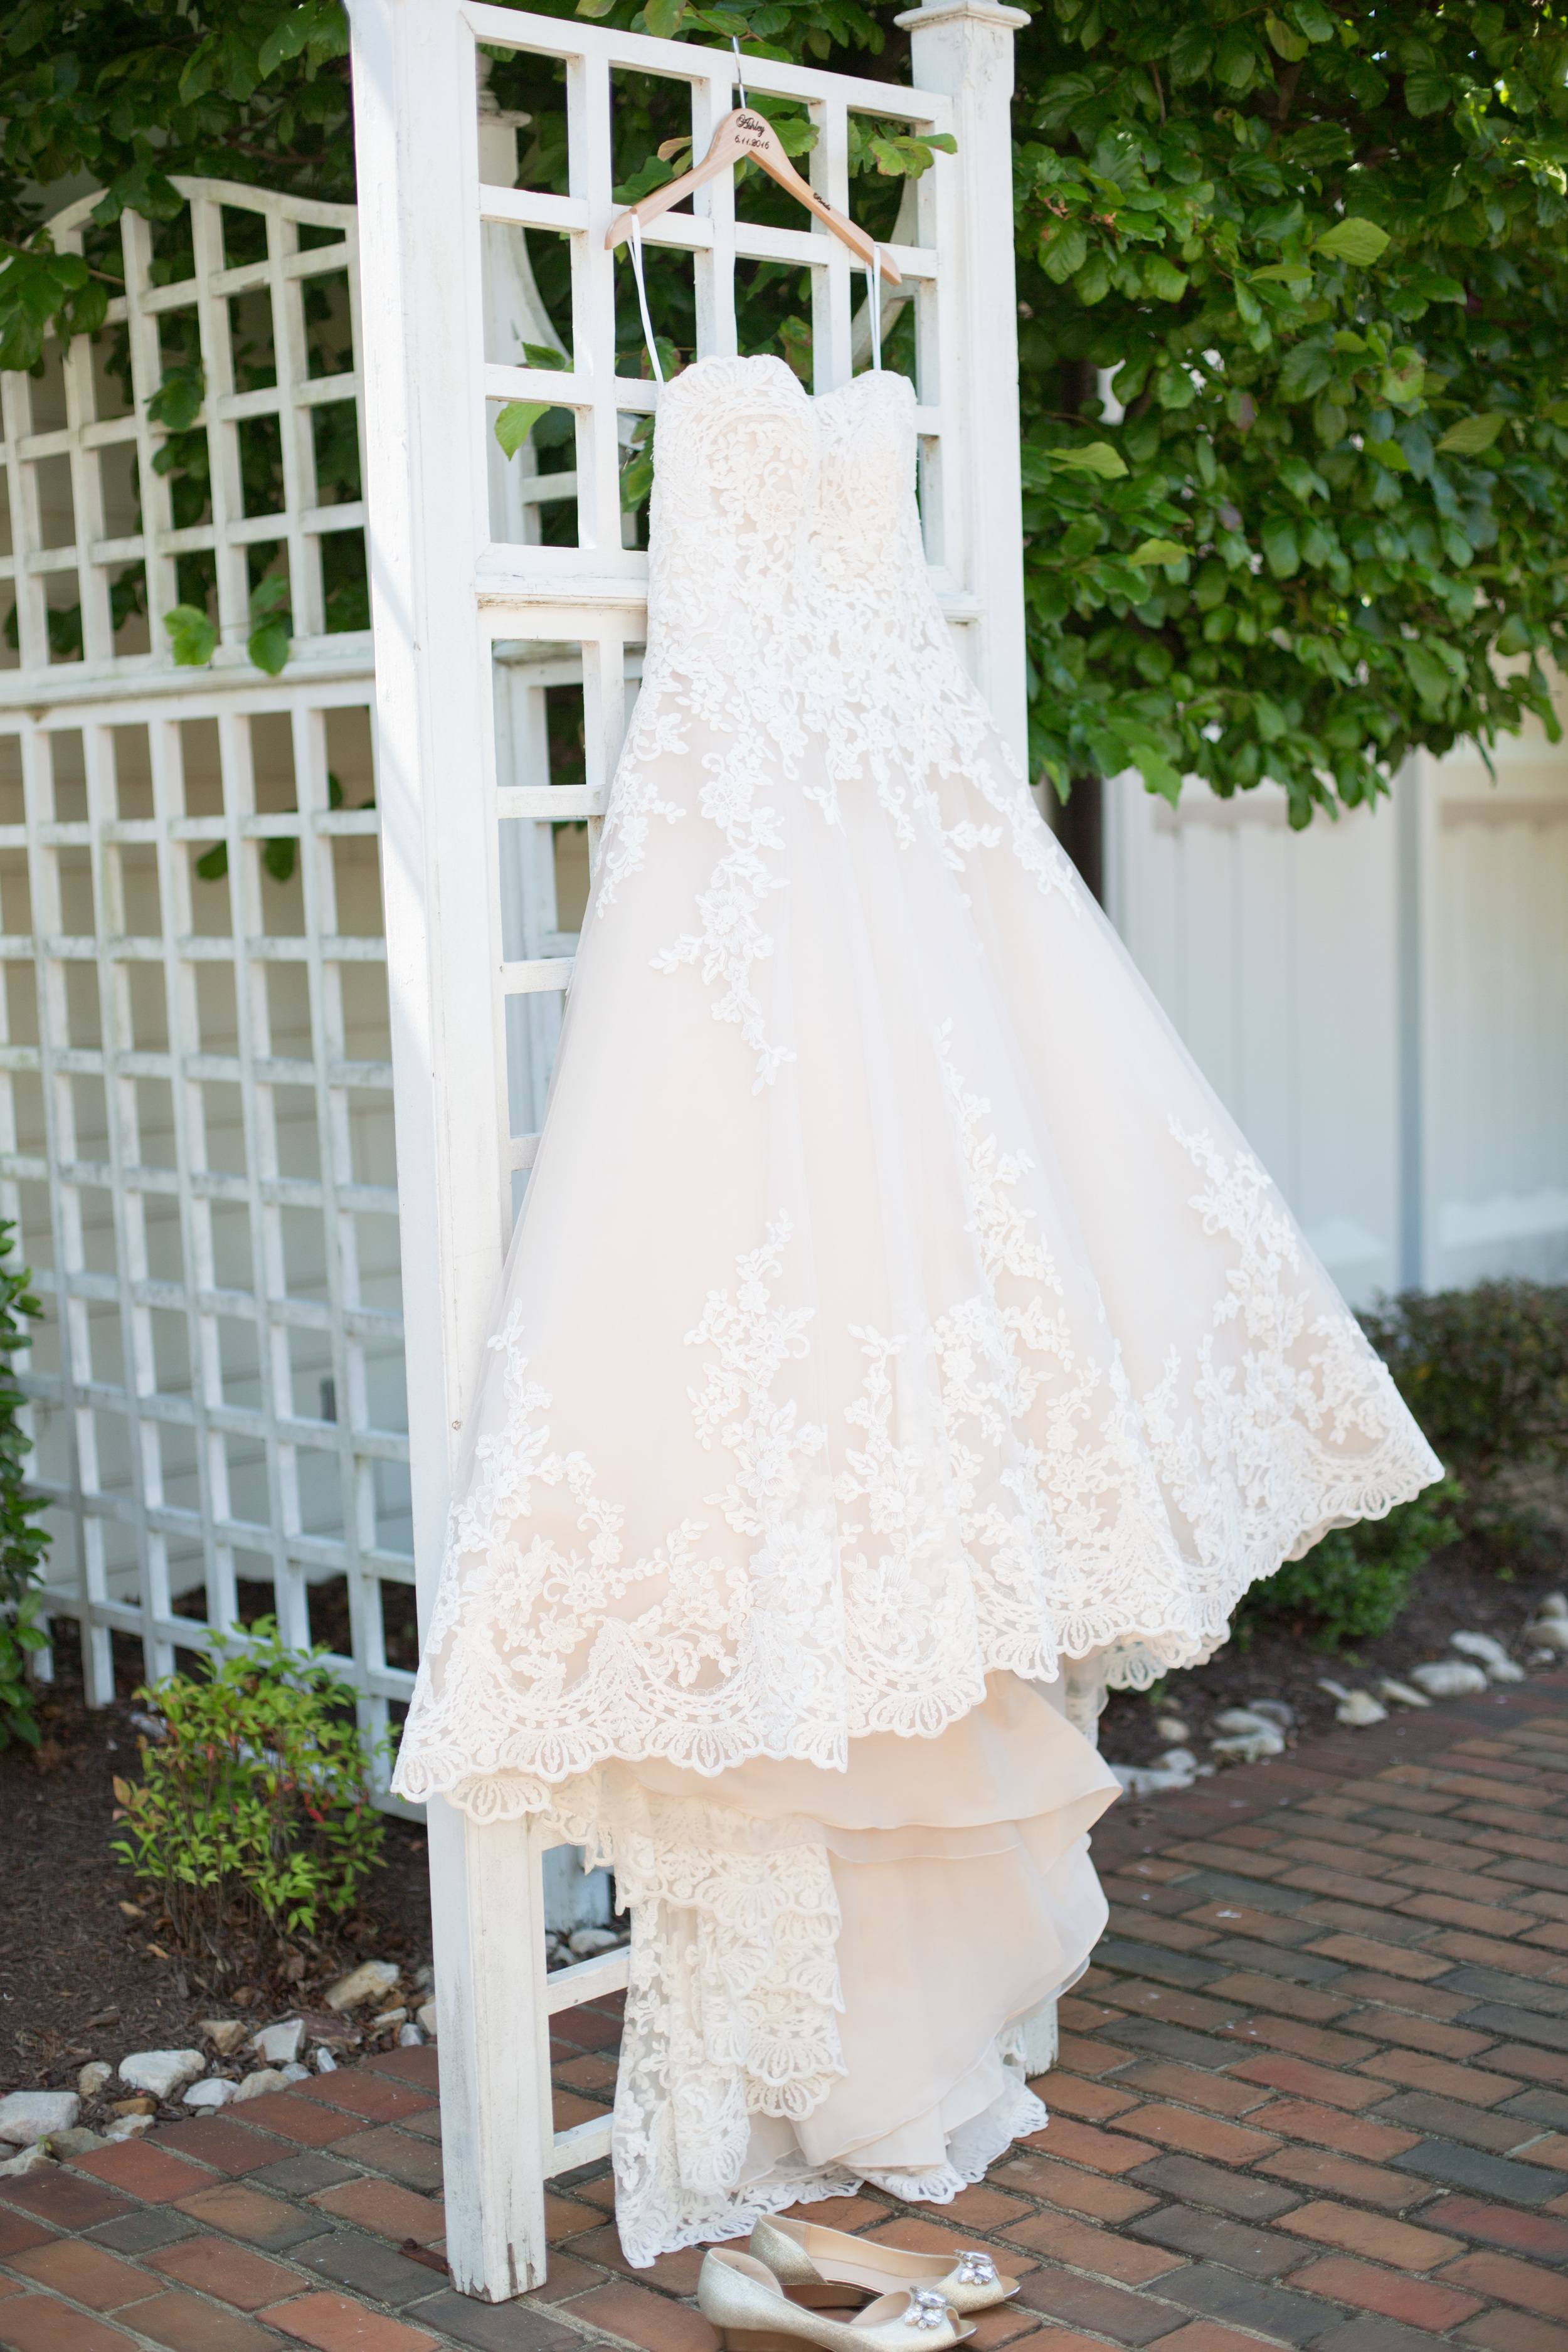 Thankfully, someone put this trellis here knowing a wedding gown would look good hanging from it! ;)